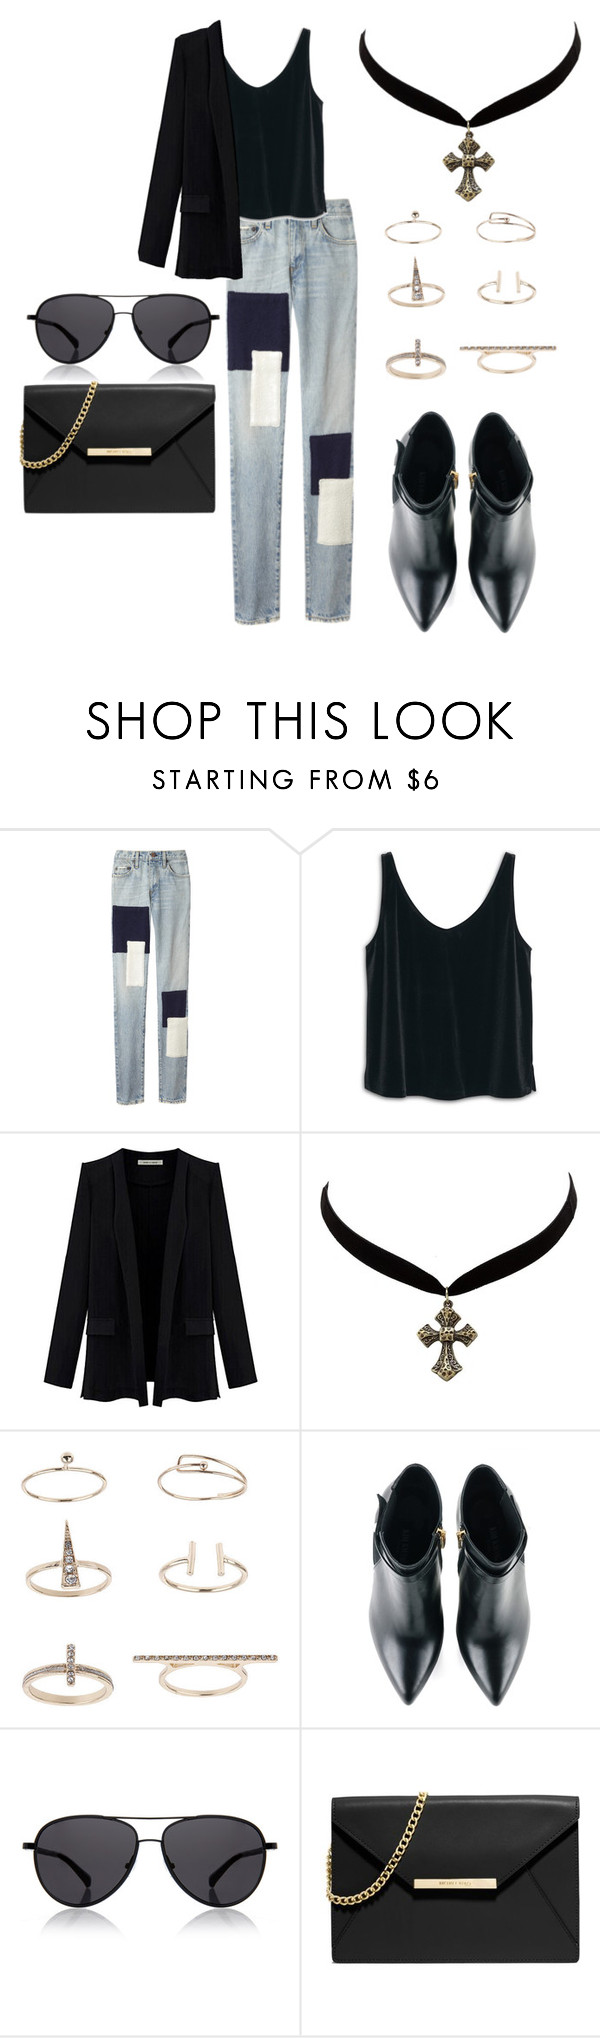 """patches"" by timmology on Polyvore featuring Simon Miller, MANGO, Charlotte Russe, Topshop, Kim Kwang, The Row and MICHAEL Michael Kors"